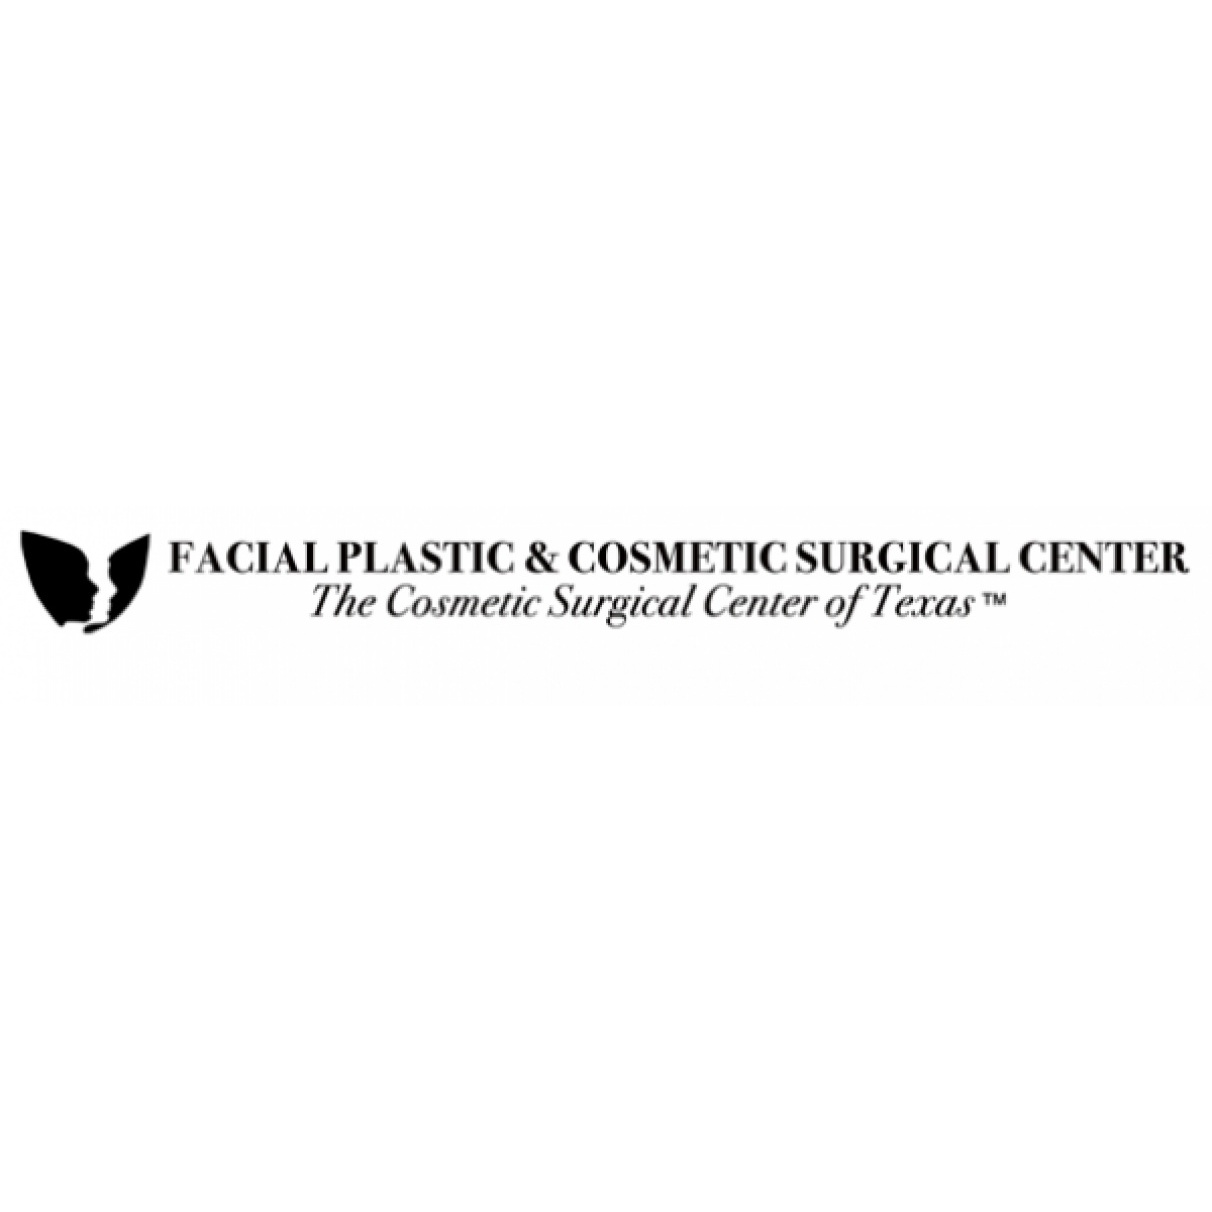 Facial Plastic & Cosmetic Surgical Center - Abilene, TX - Dentists & Dental Services